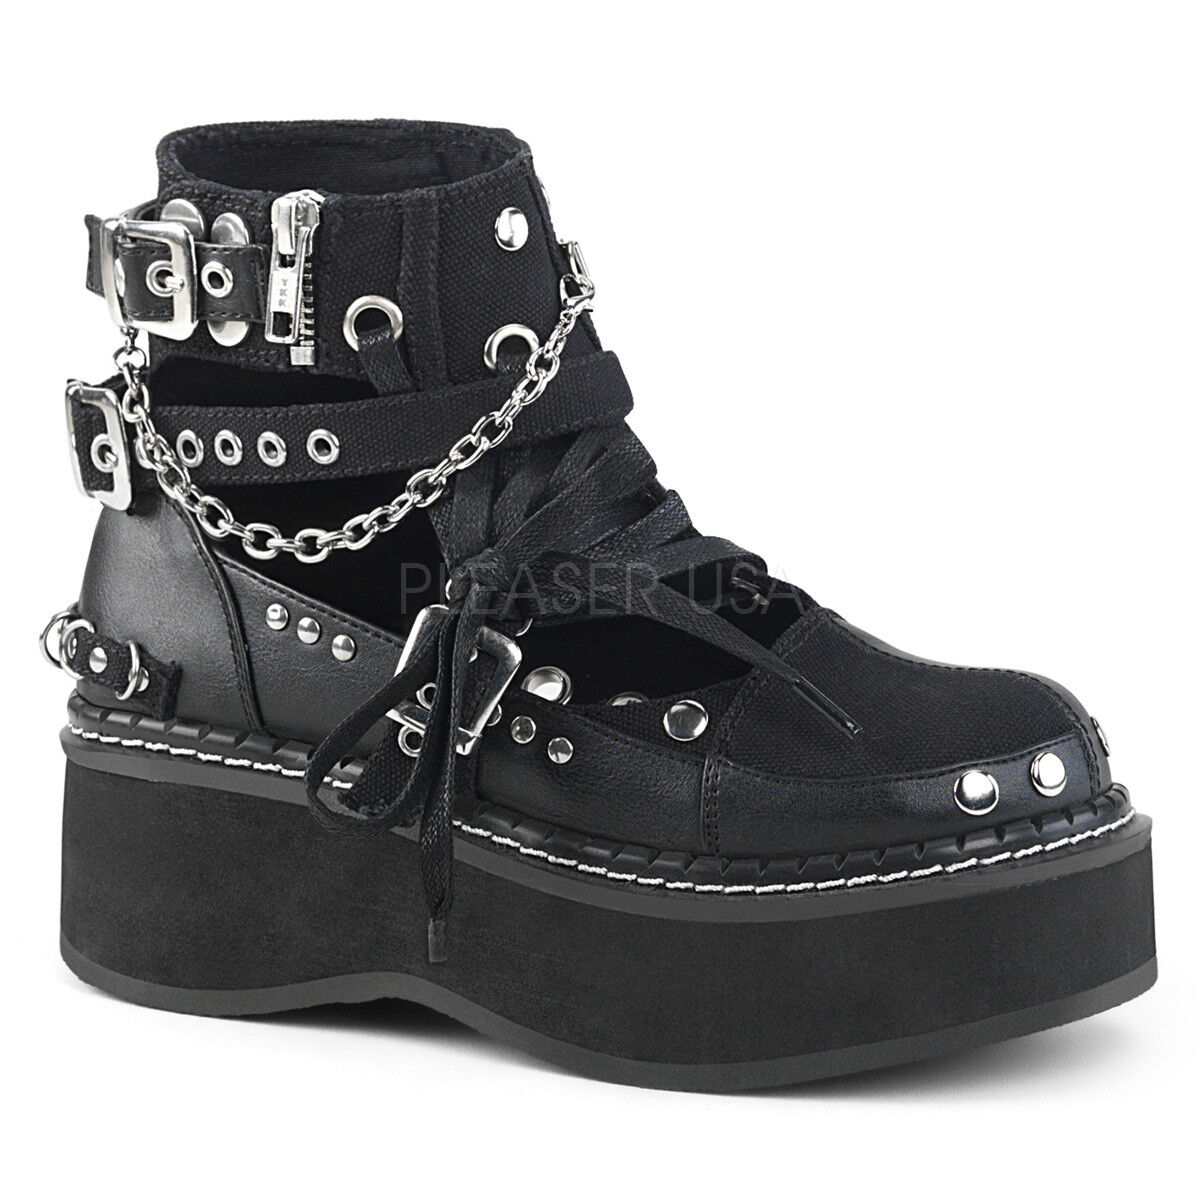 EMILY-317 2  COMBAT BIKER STRAP CHAIN STUDDED LACE UP WEDGE PLATFORM ANKLE BOOT